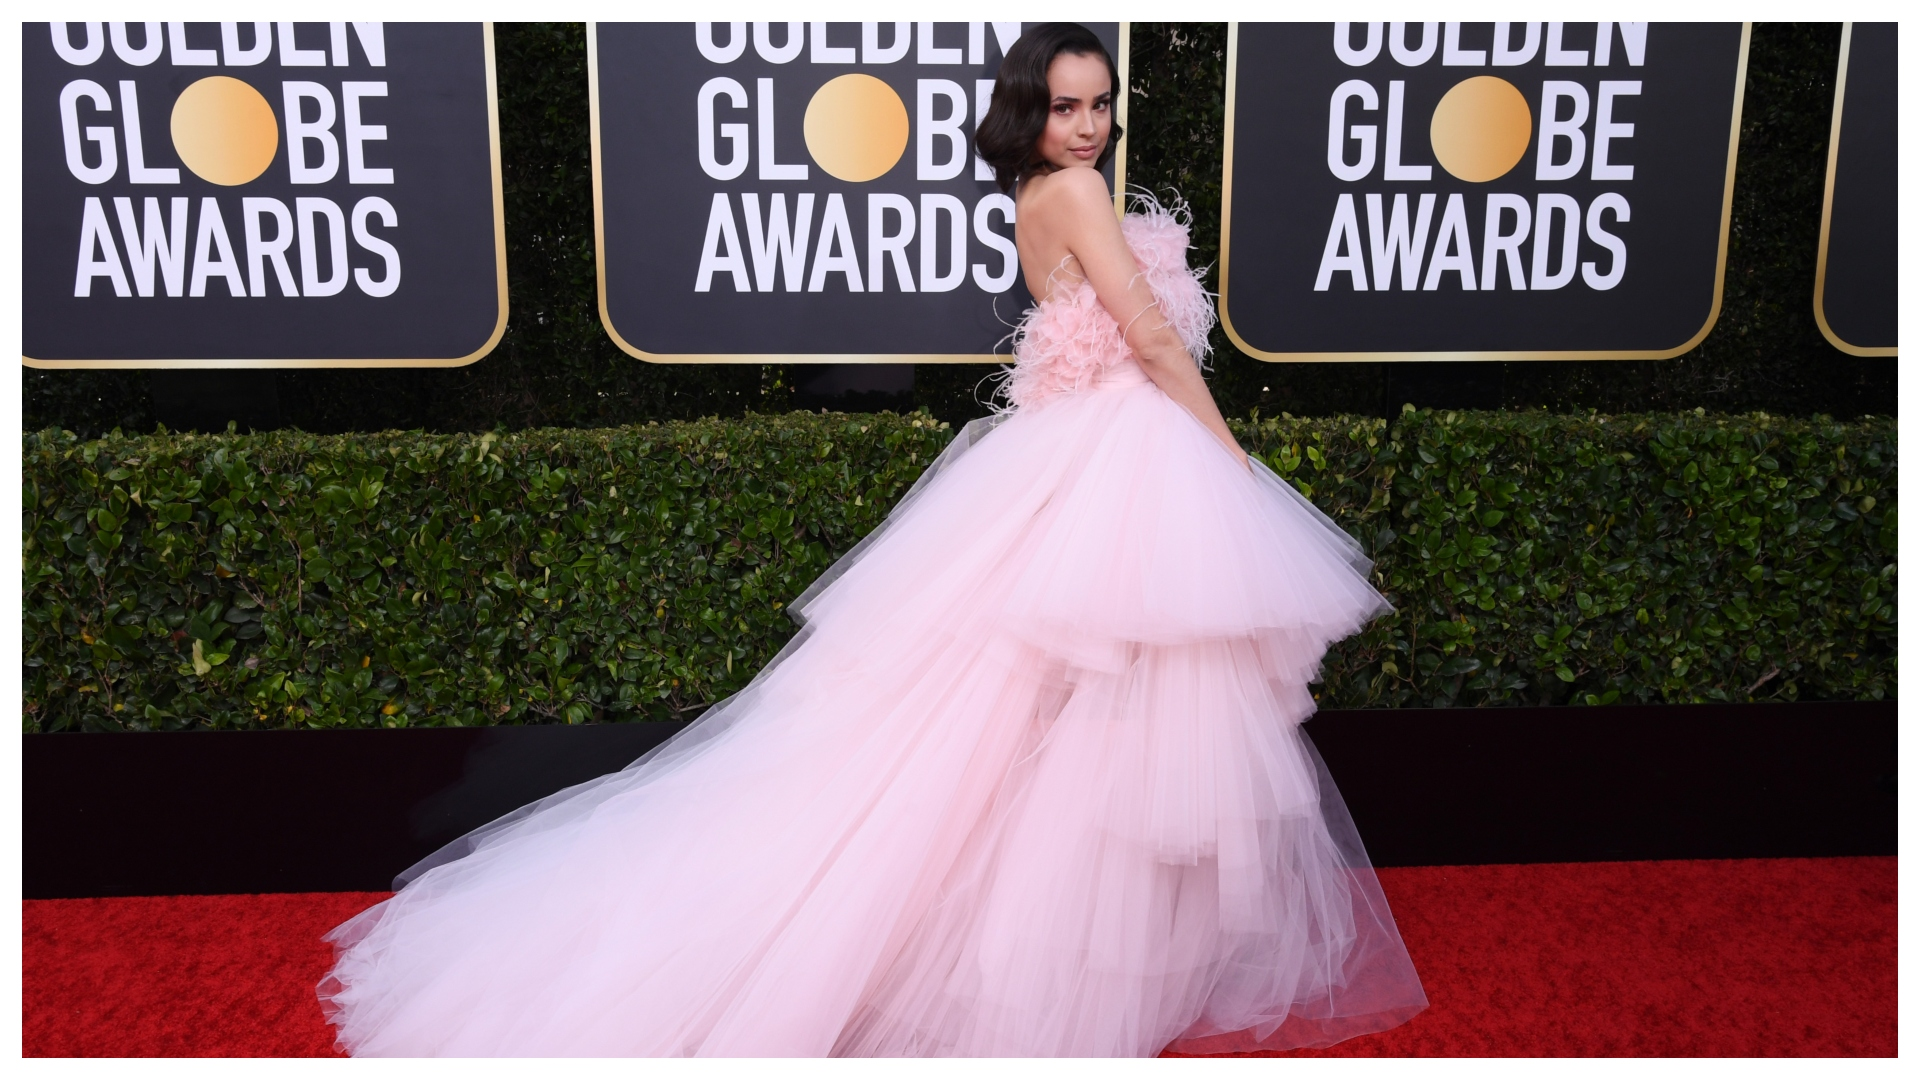 Golden Globes 2020 The Most Shocking Red Carpet Looks